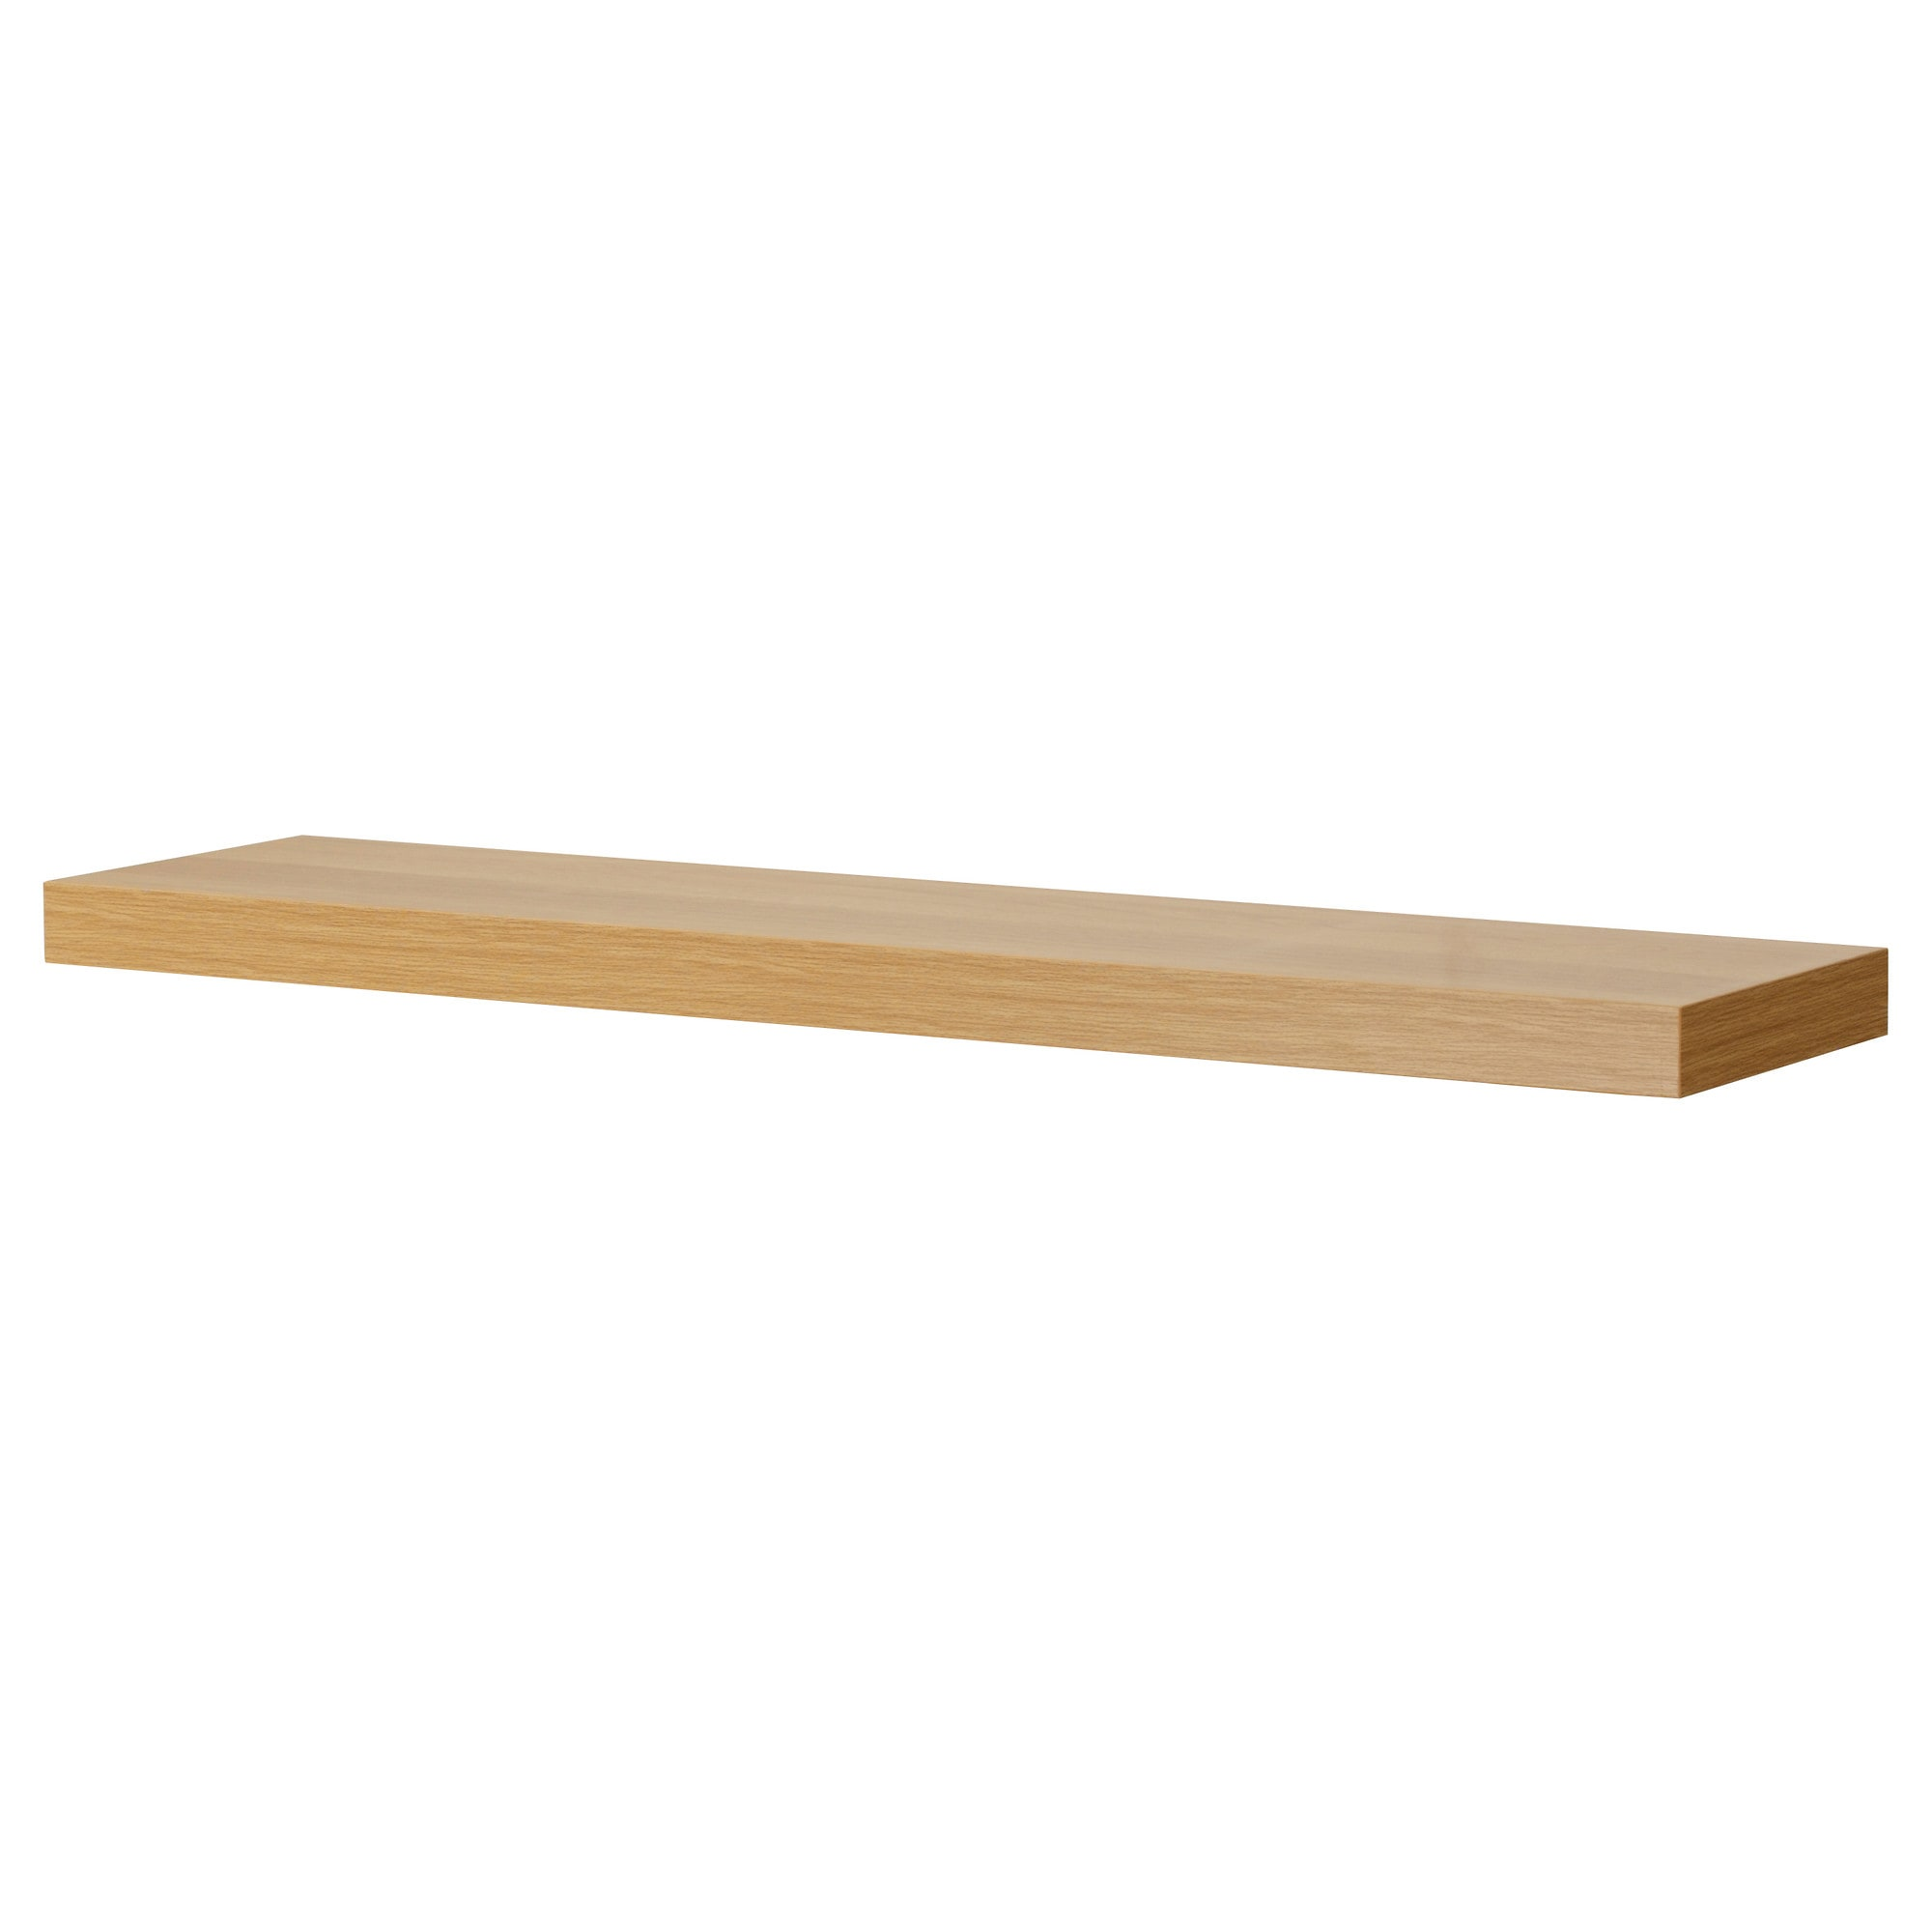 floating shelves wall shelf brackets ikea lack oak effect and the becomes one with thanks concealed mounting laminate kitchen countertop ideas bathroom towel brushed nickel